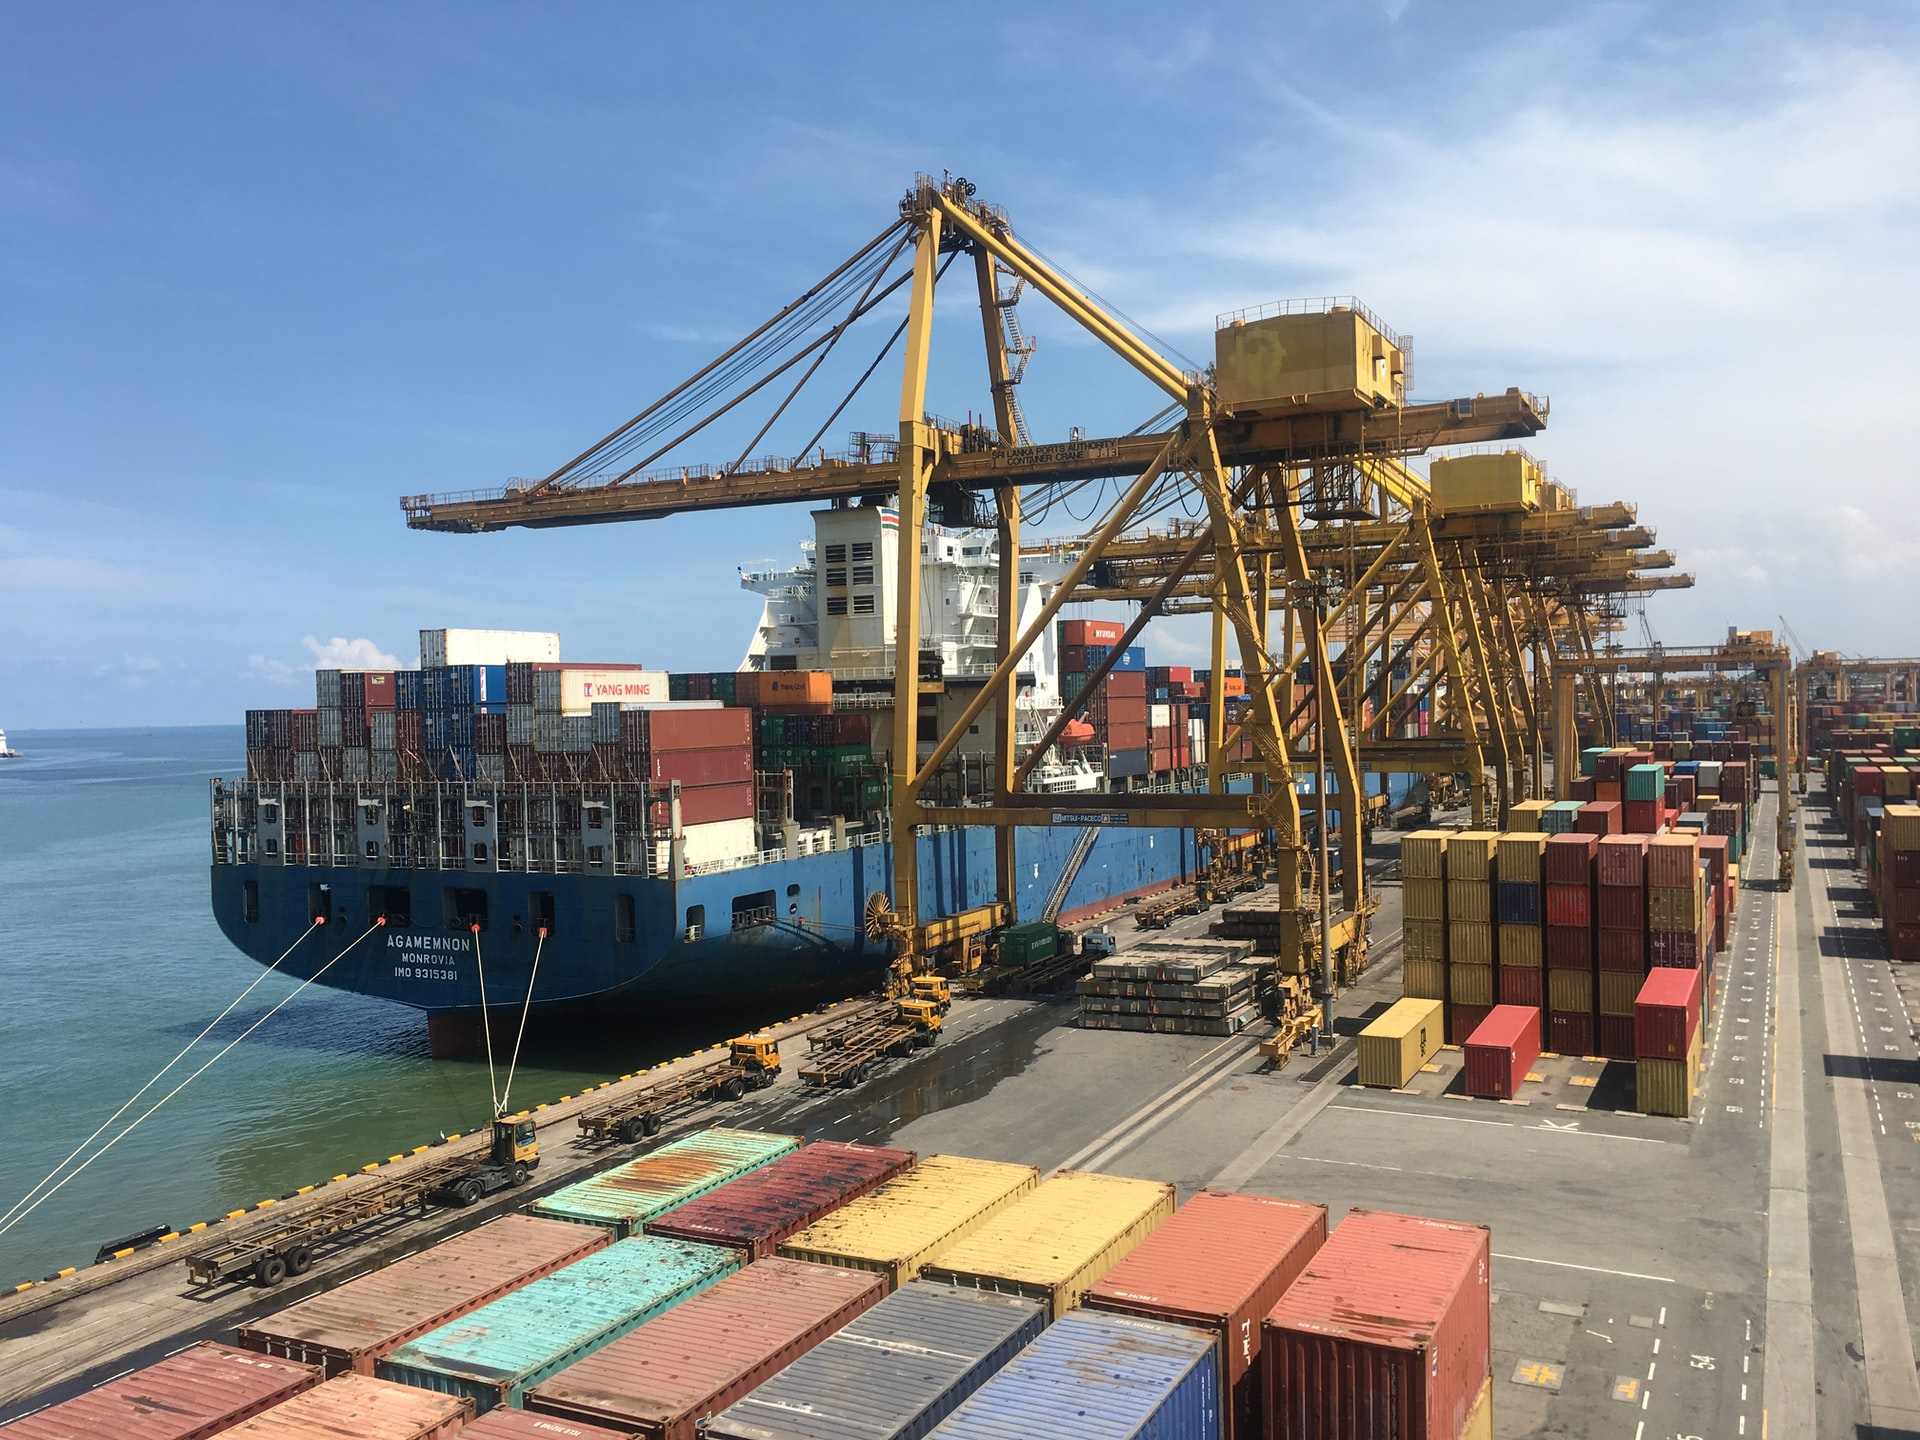 Loading of Container ship